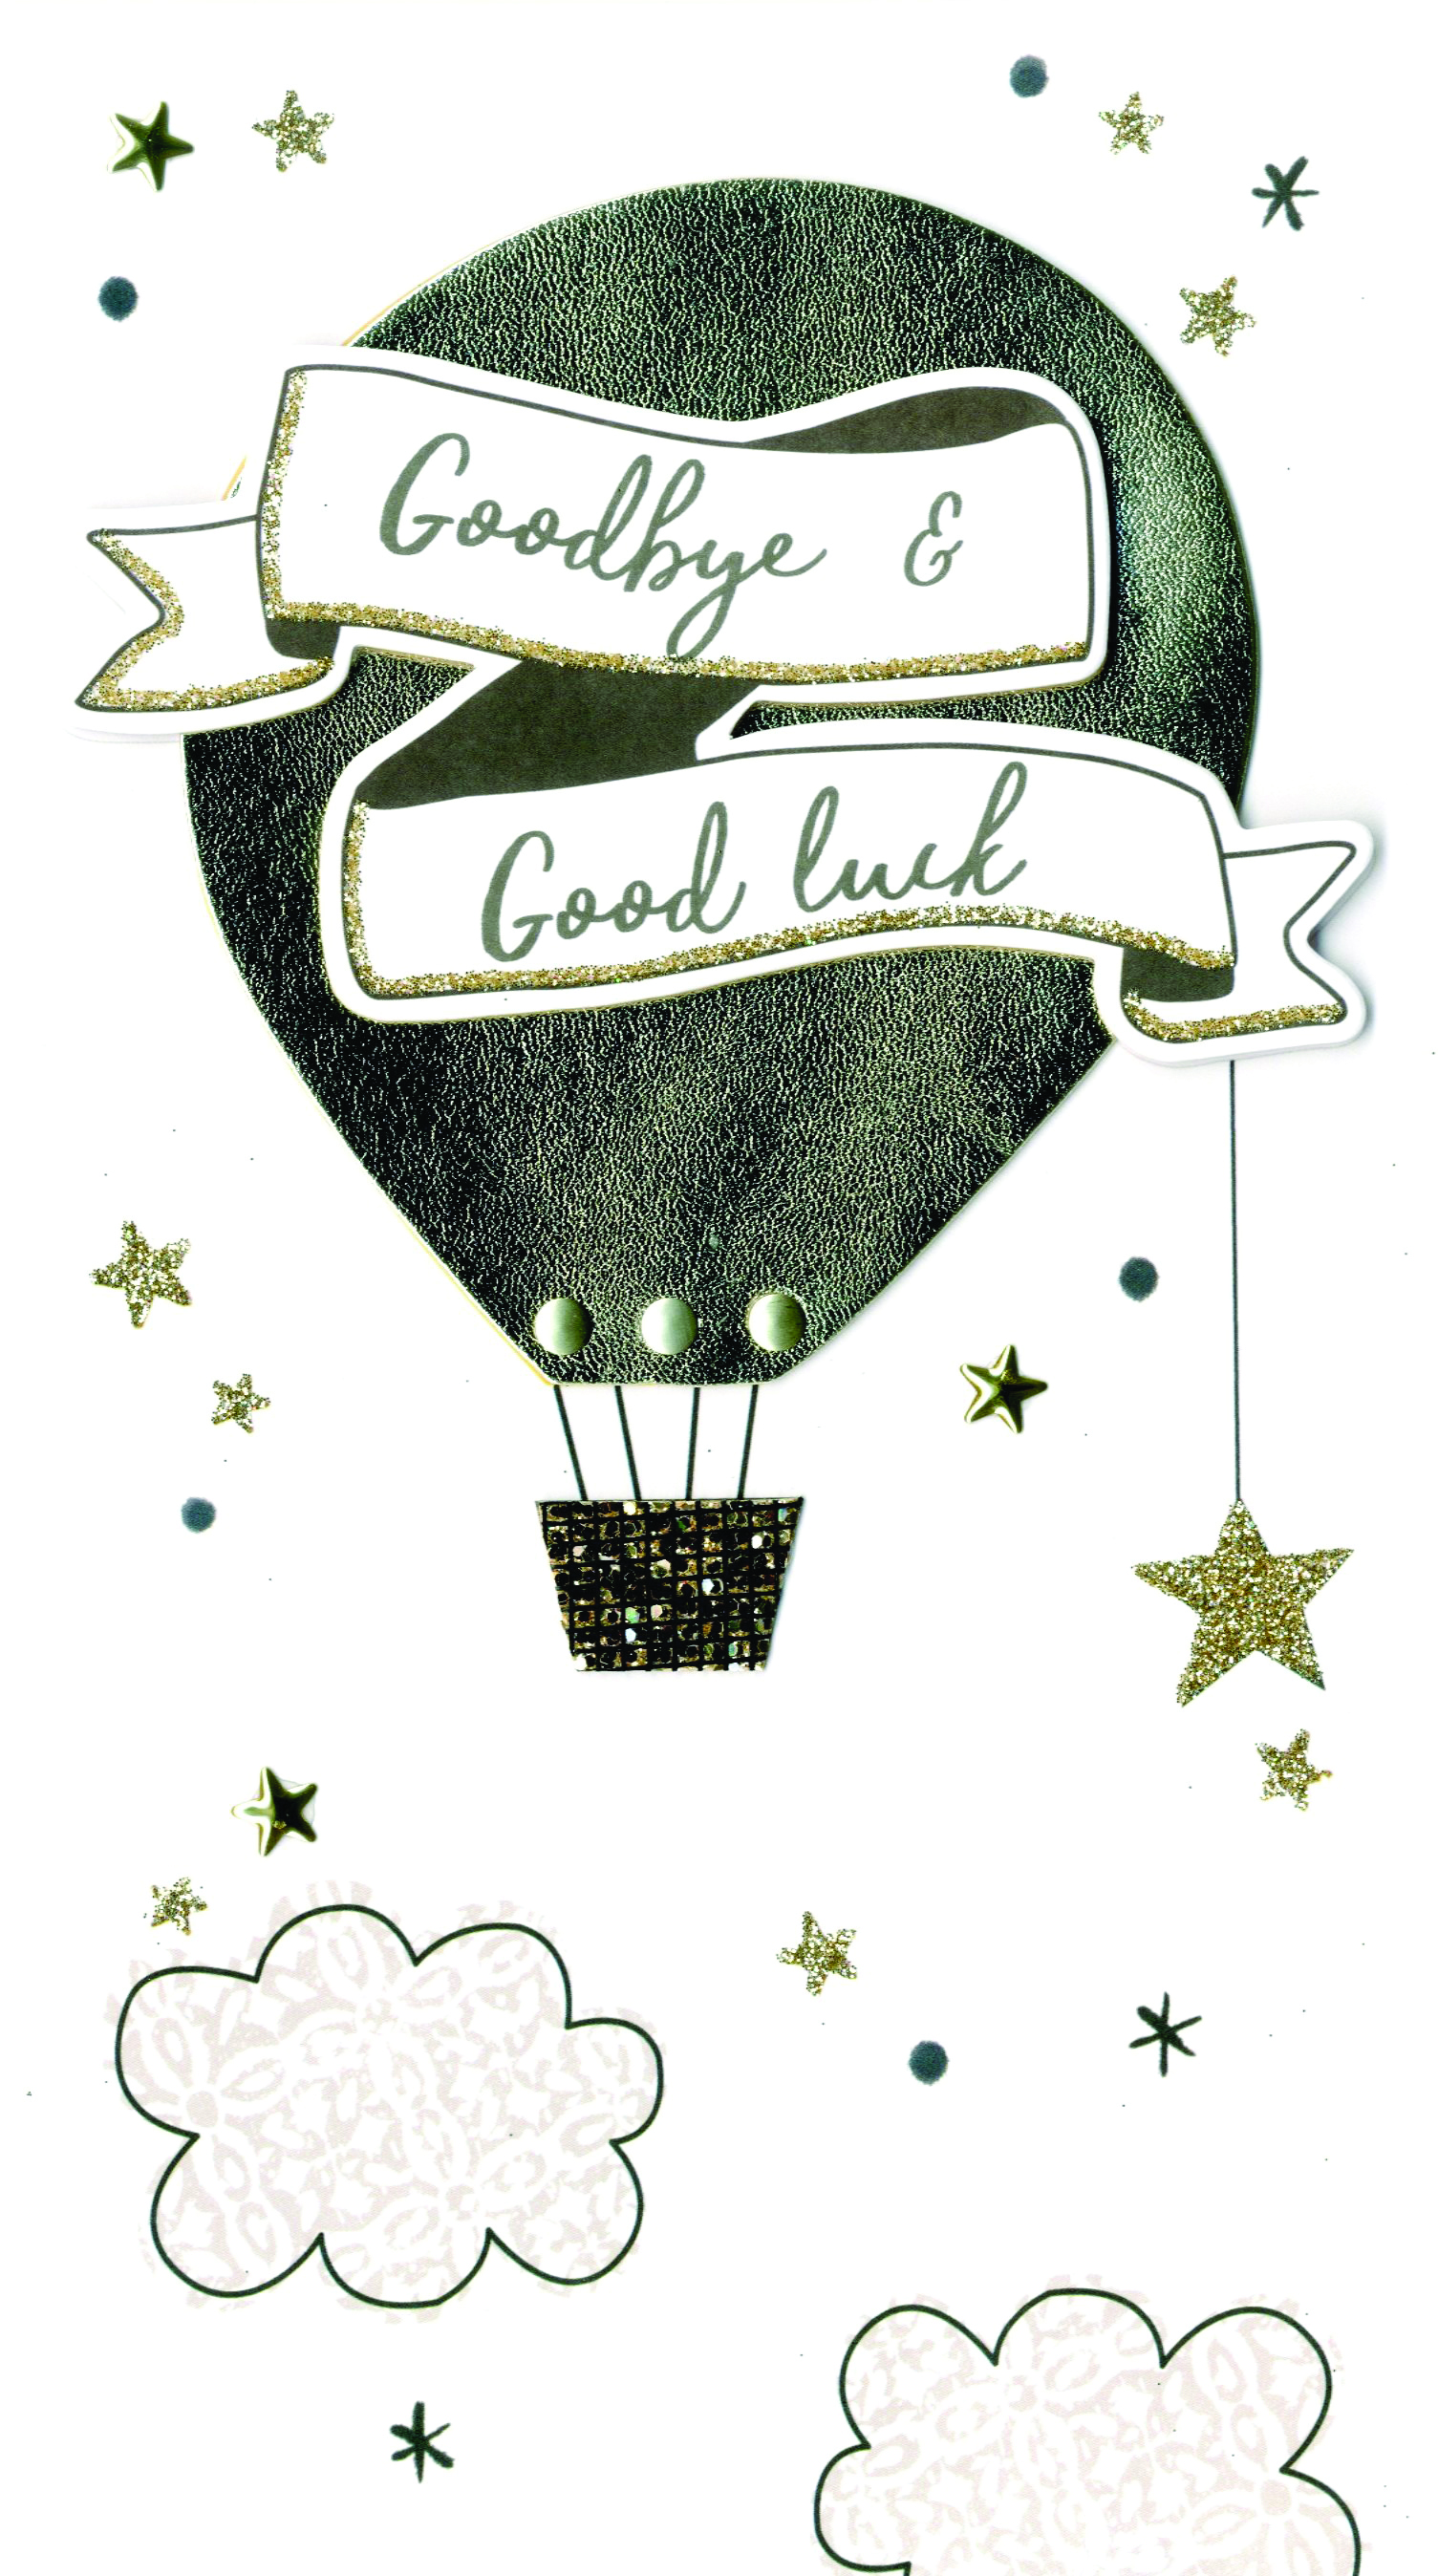 Goodbye & Good Luck Greeting Card Hand-Finished